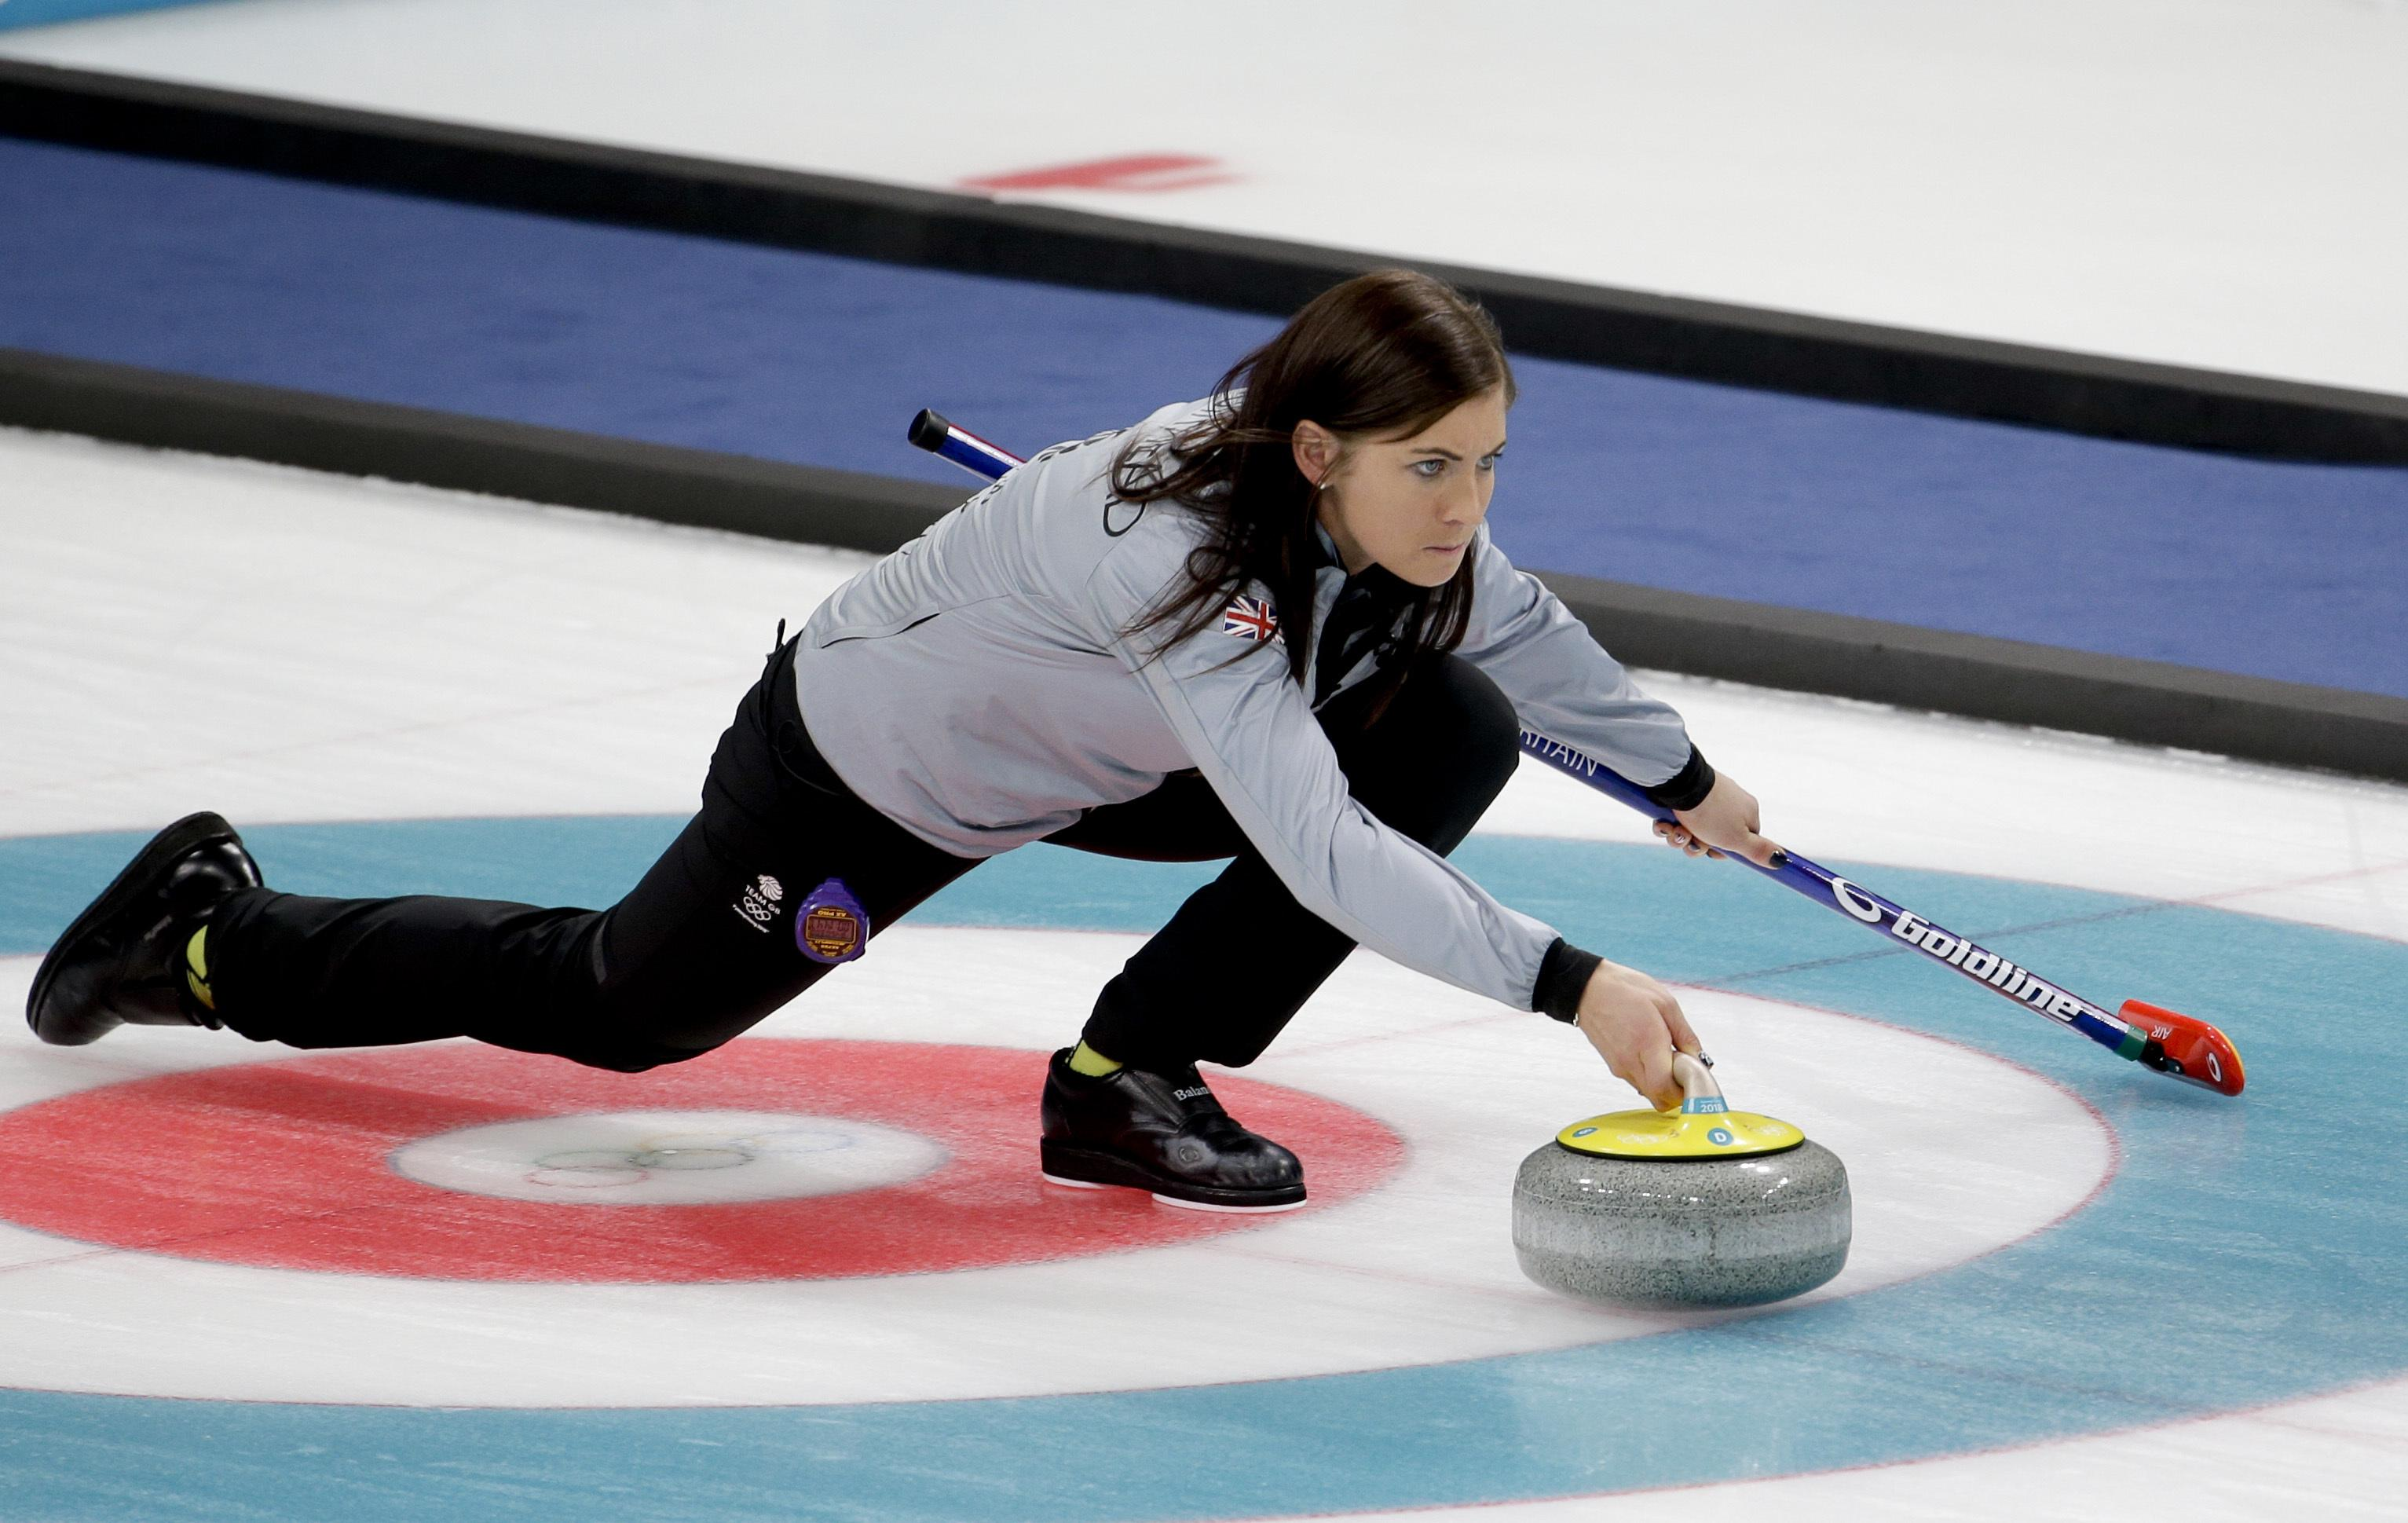 Eve Muirhead will be looking for a repeat of her gold medal in Sochi